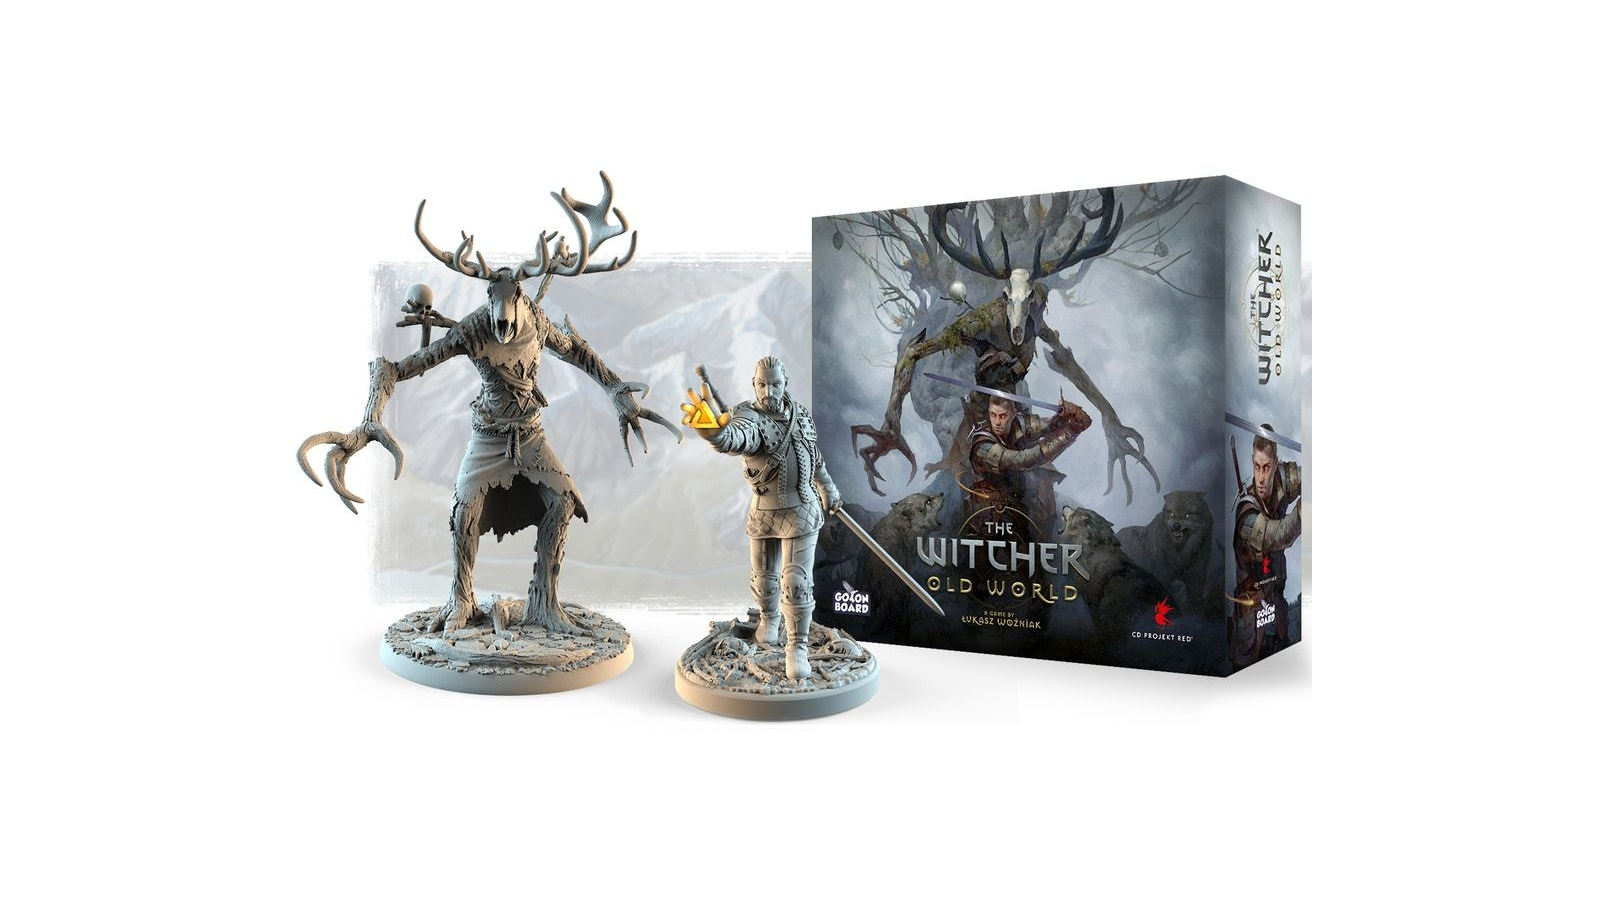 Pendragon Game Studios annuncia The Witcher: Old World